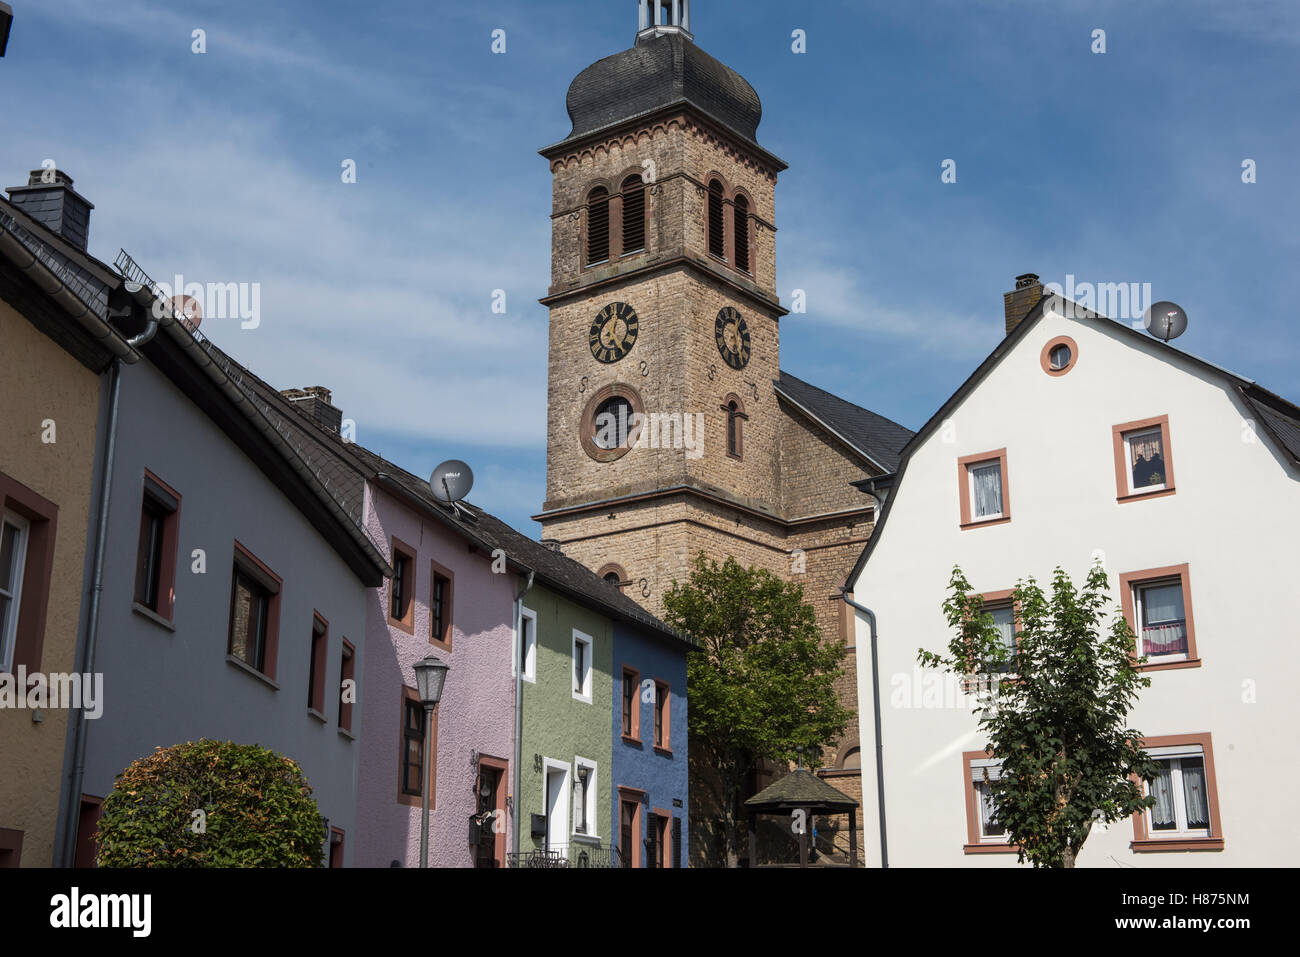 Hillesheim; Germany; Brian Harris Stock Photo